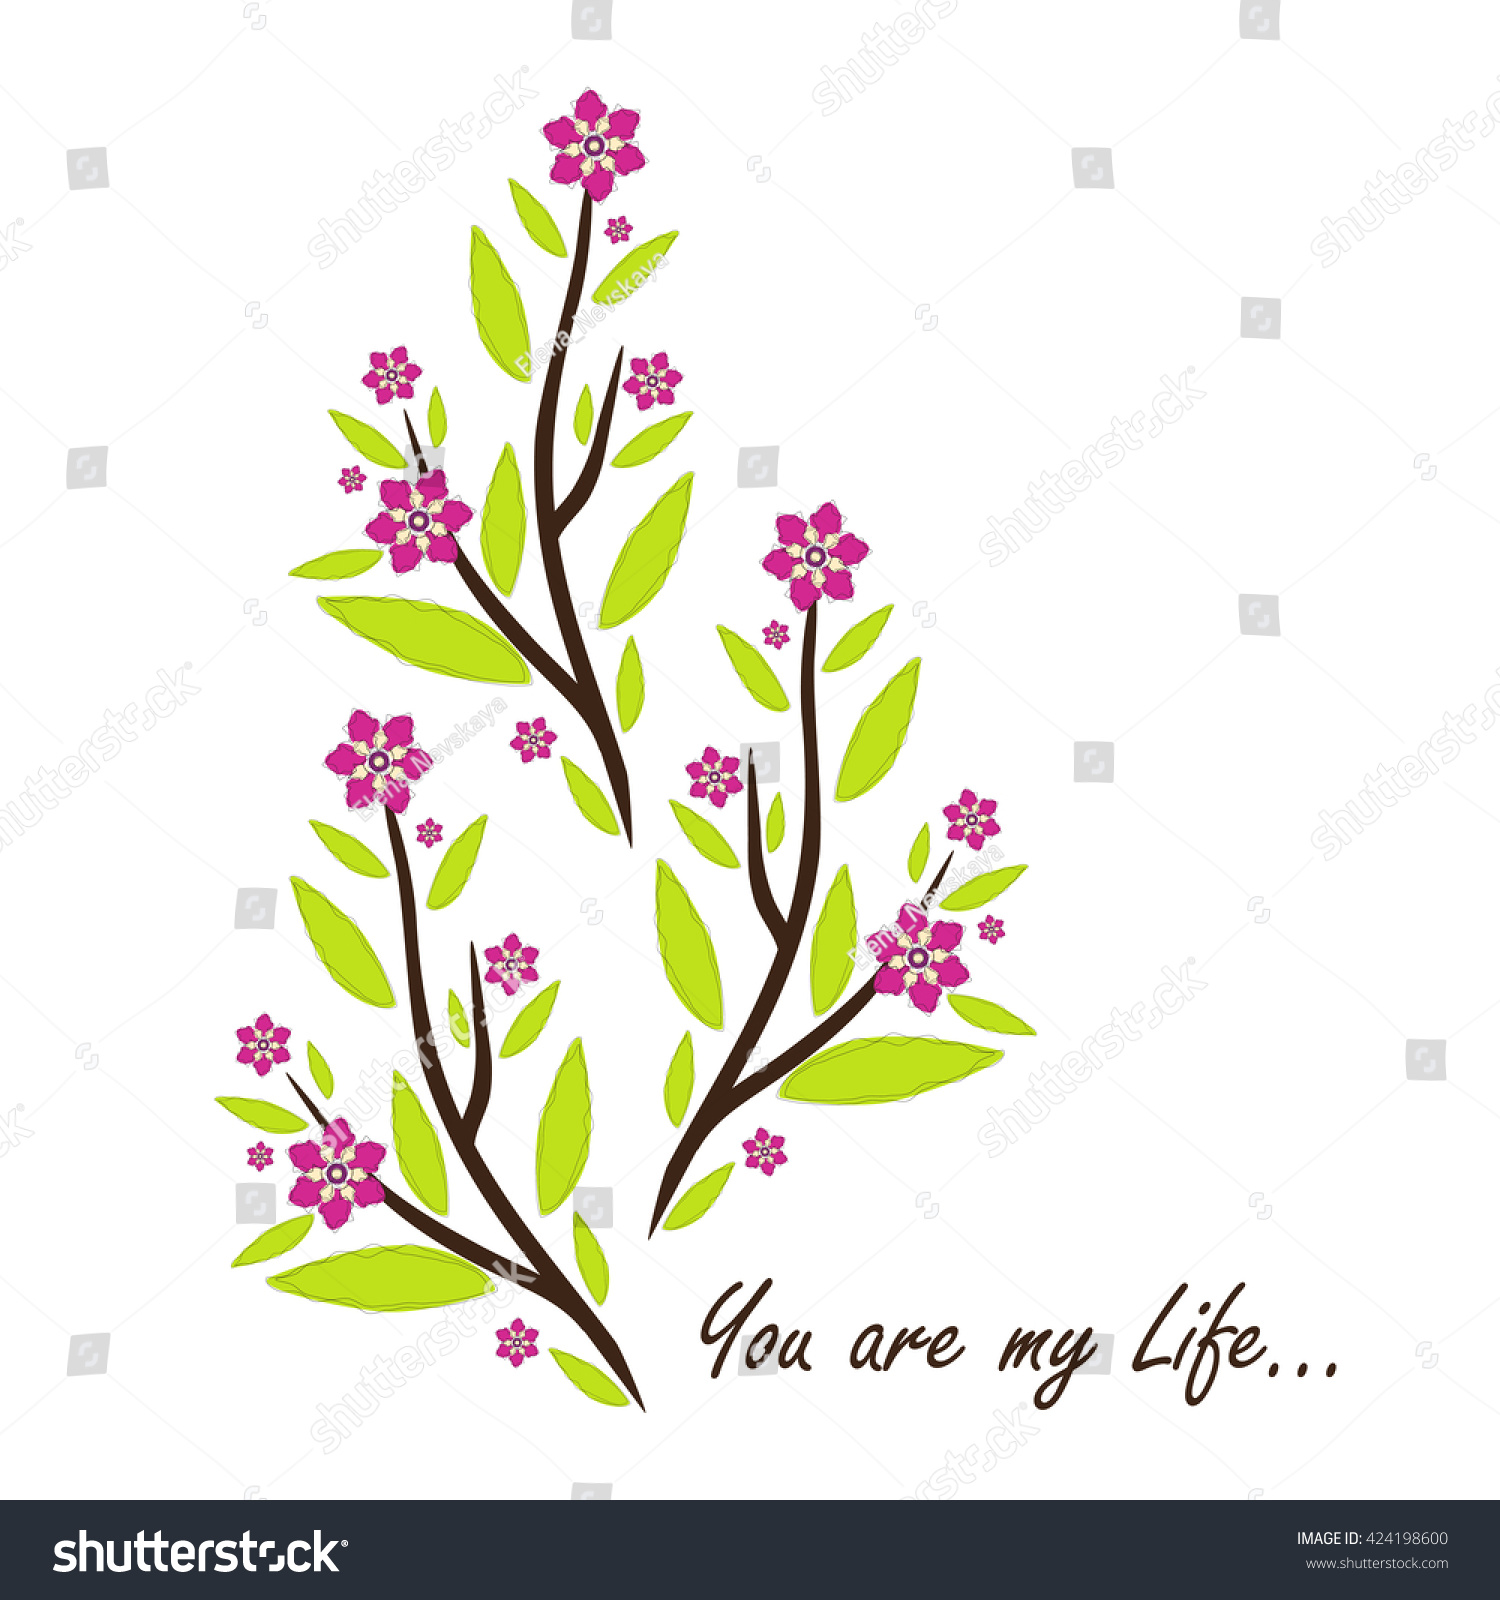 Vector amazing flower design beautiful greeting stock vector vector amazing flower design beautiful greeting card with romantic phrase flat minimalistic dhlflorist Choice Image